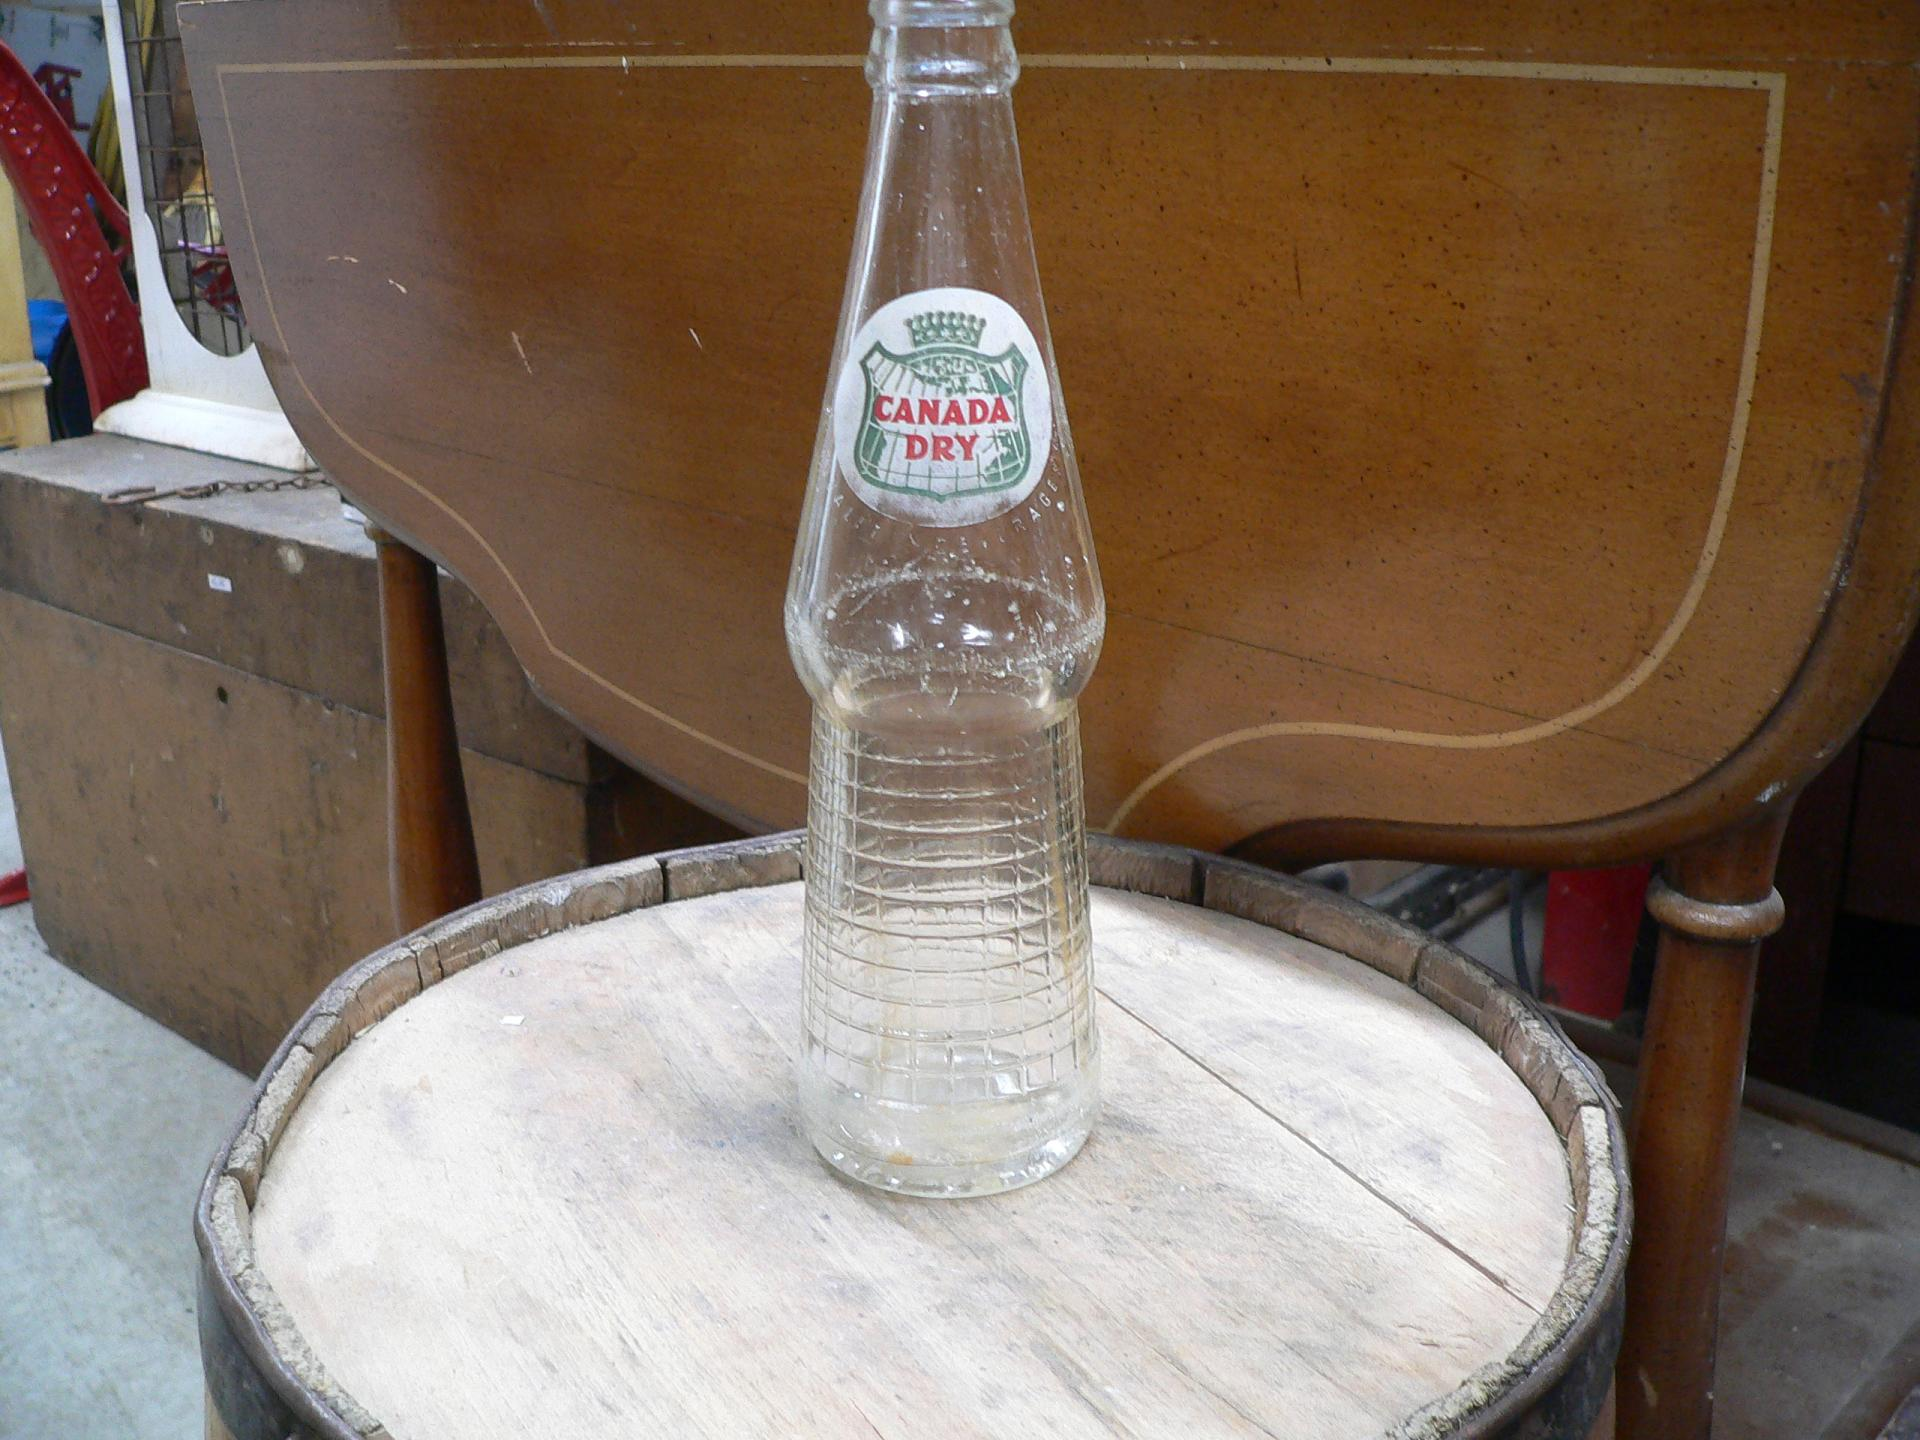 Bouteille canada dry # 5214.6